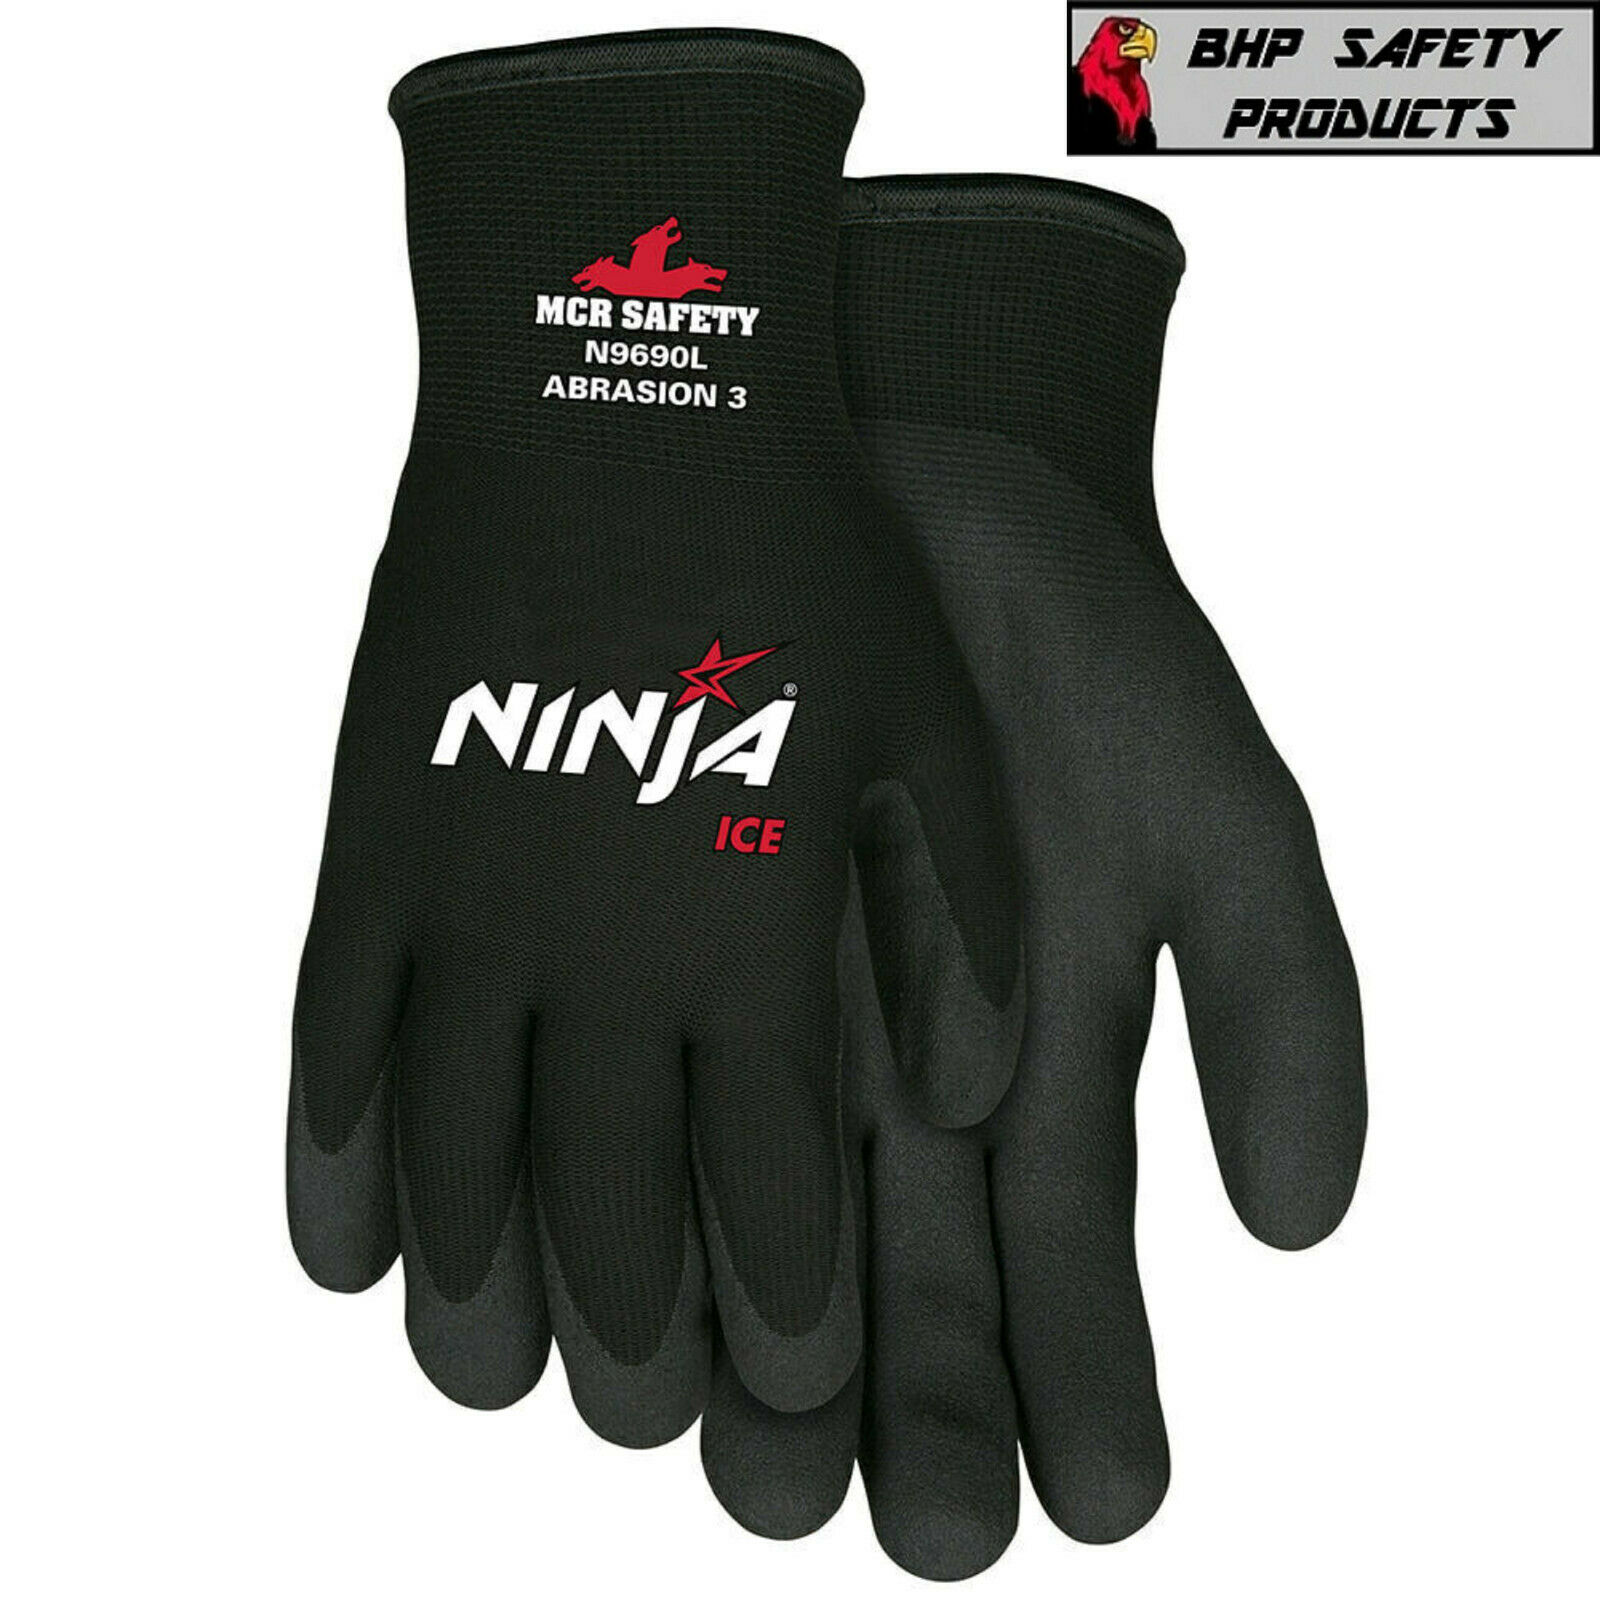 MCR MEMPHIS NINJA ICE INSULATED COLD WINTER WEATHER SAFETY W